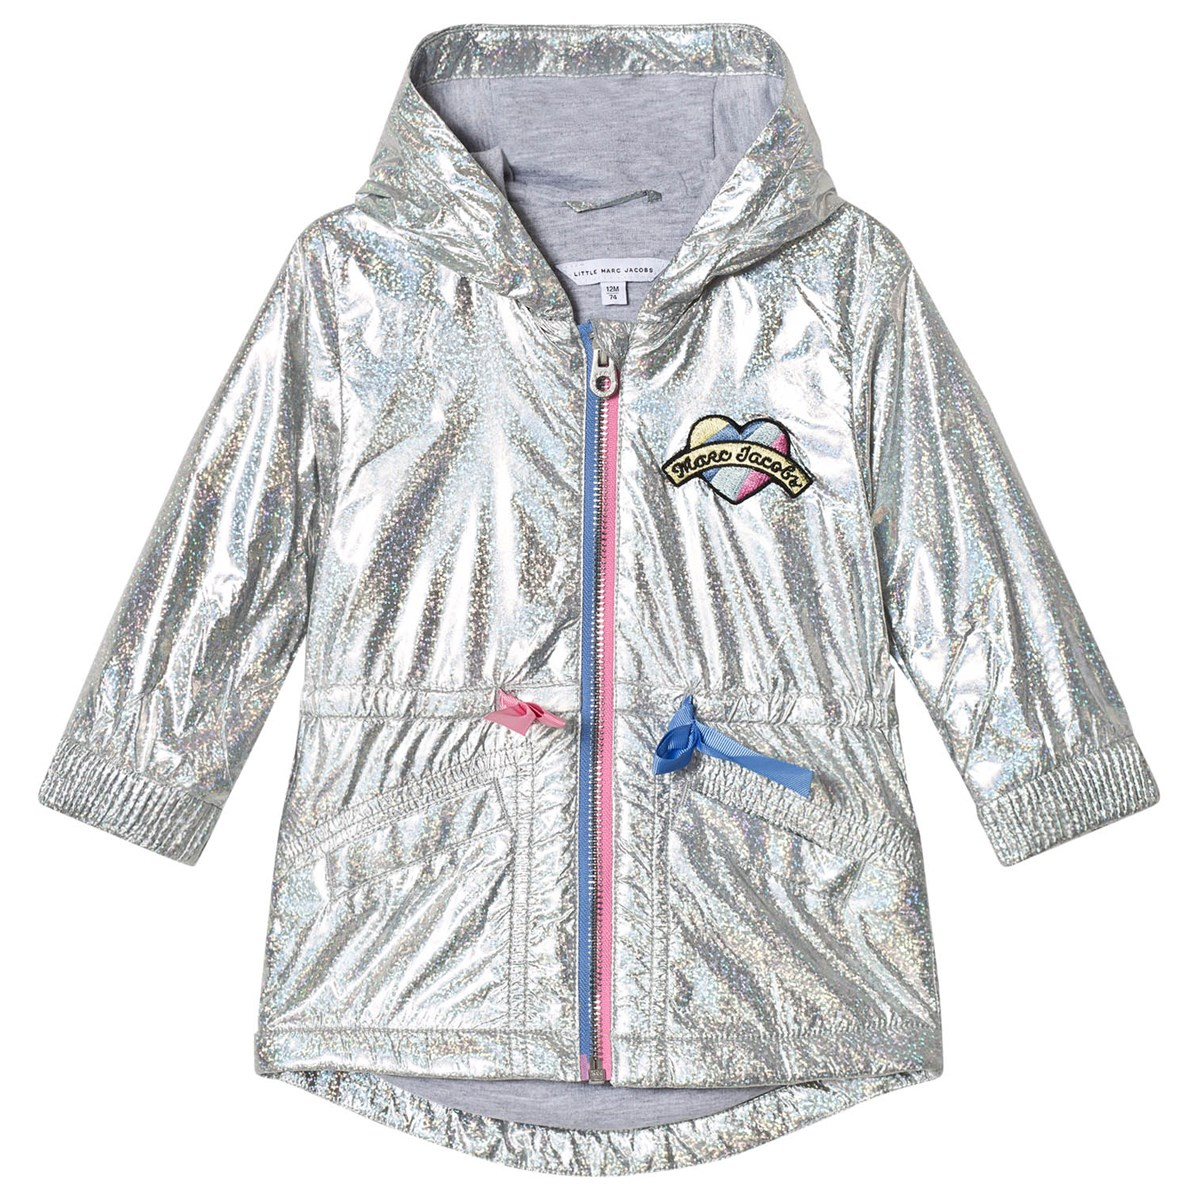 25607cc9e286 Little Marc Jacobs Silver Holographic Parka with Branded Patch ...